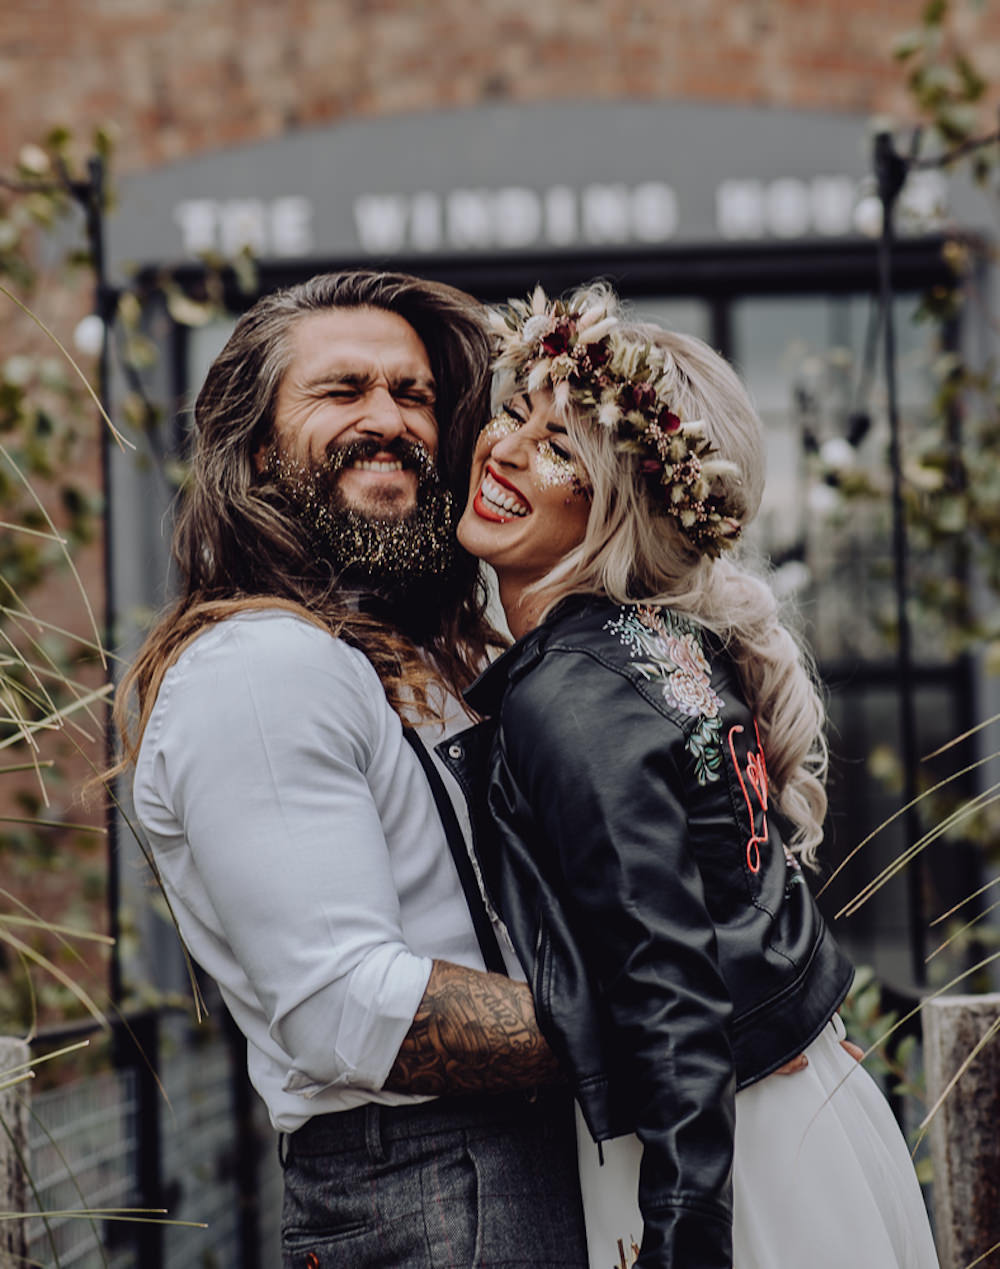 Glitter Beard Groom Make Up Bride Bridal Unconventional Wedding Ideas Pierra G Photography